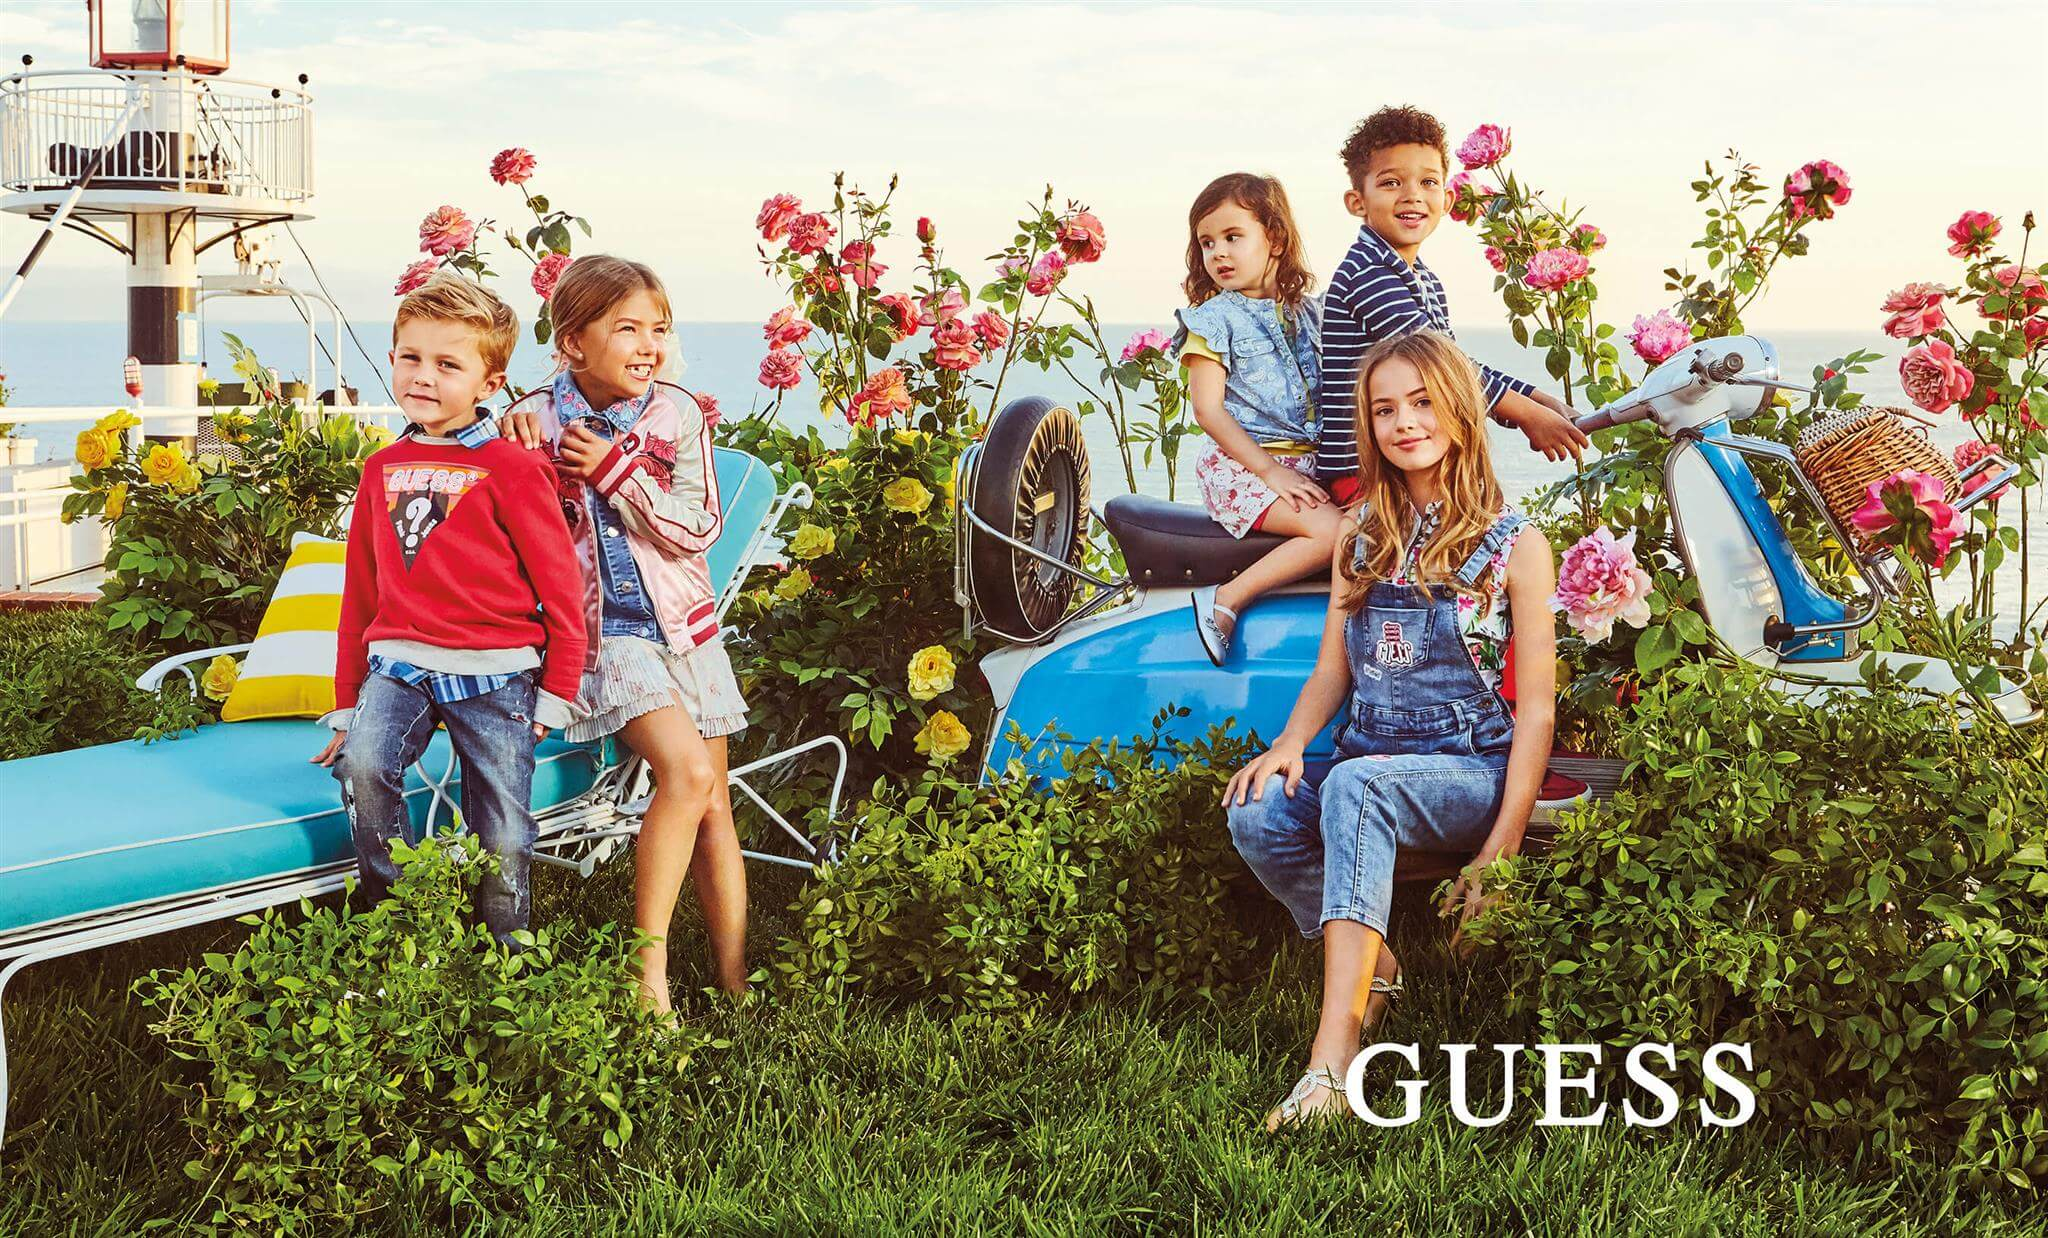 599_GUESS_Kids_Sp18_V26-2